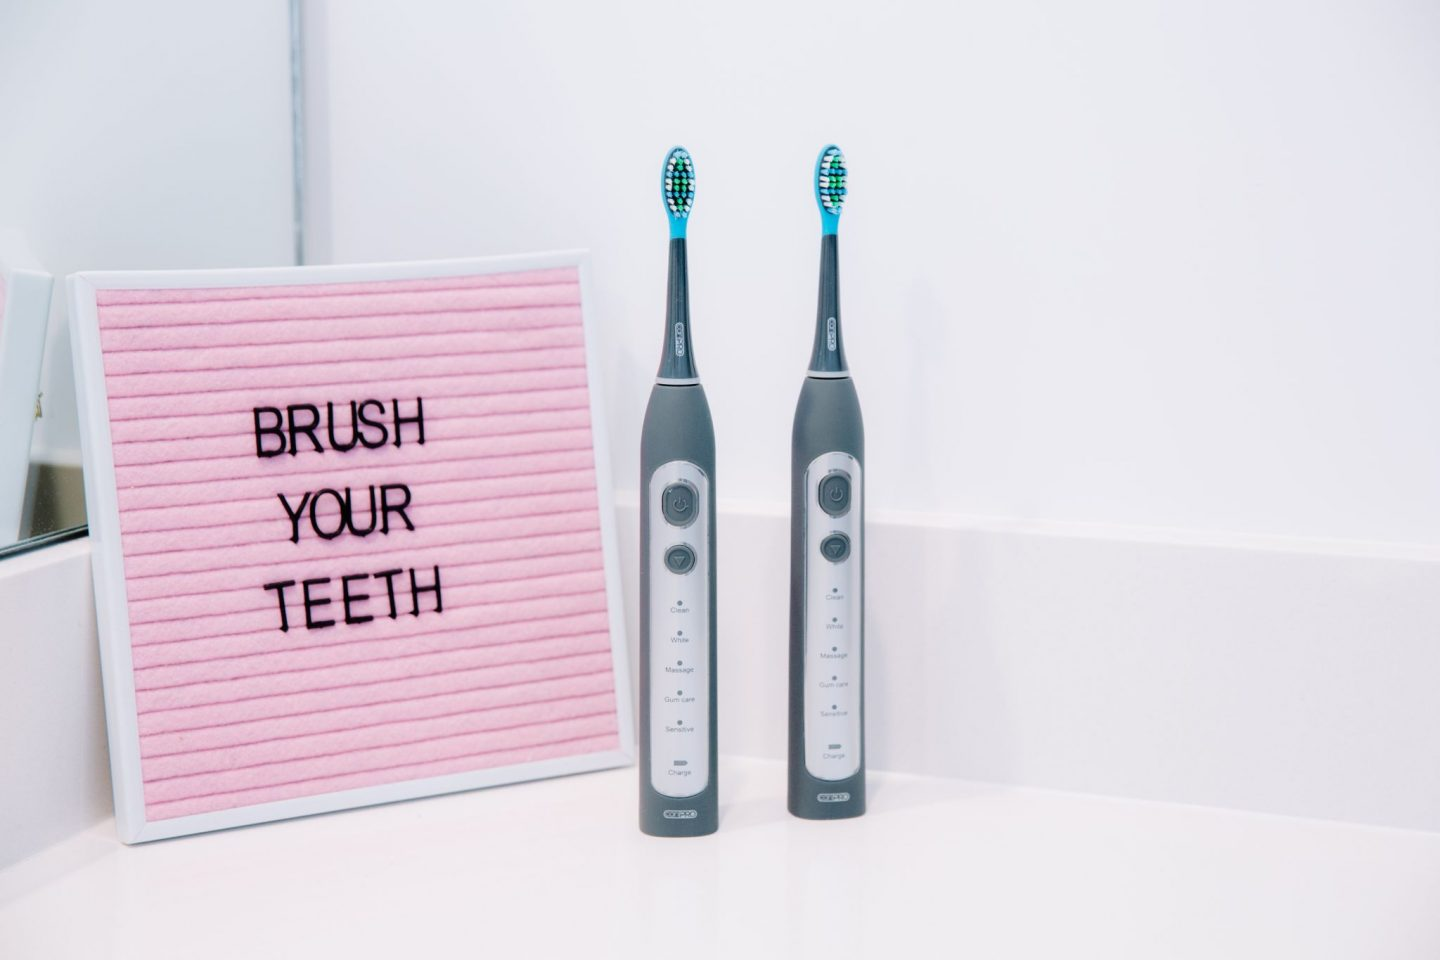 CARIPRO ULTRASONIC ELECTRIC TOOTHBRUSH + GIVEAWAY